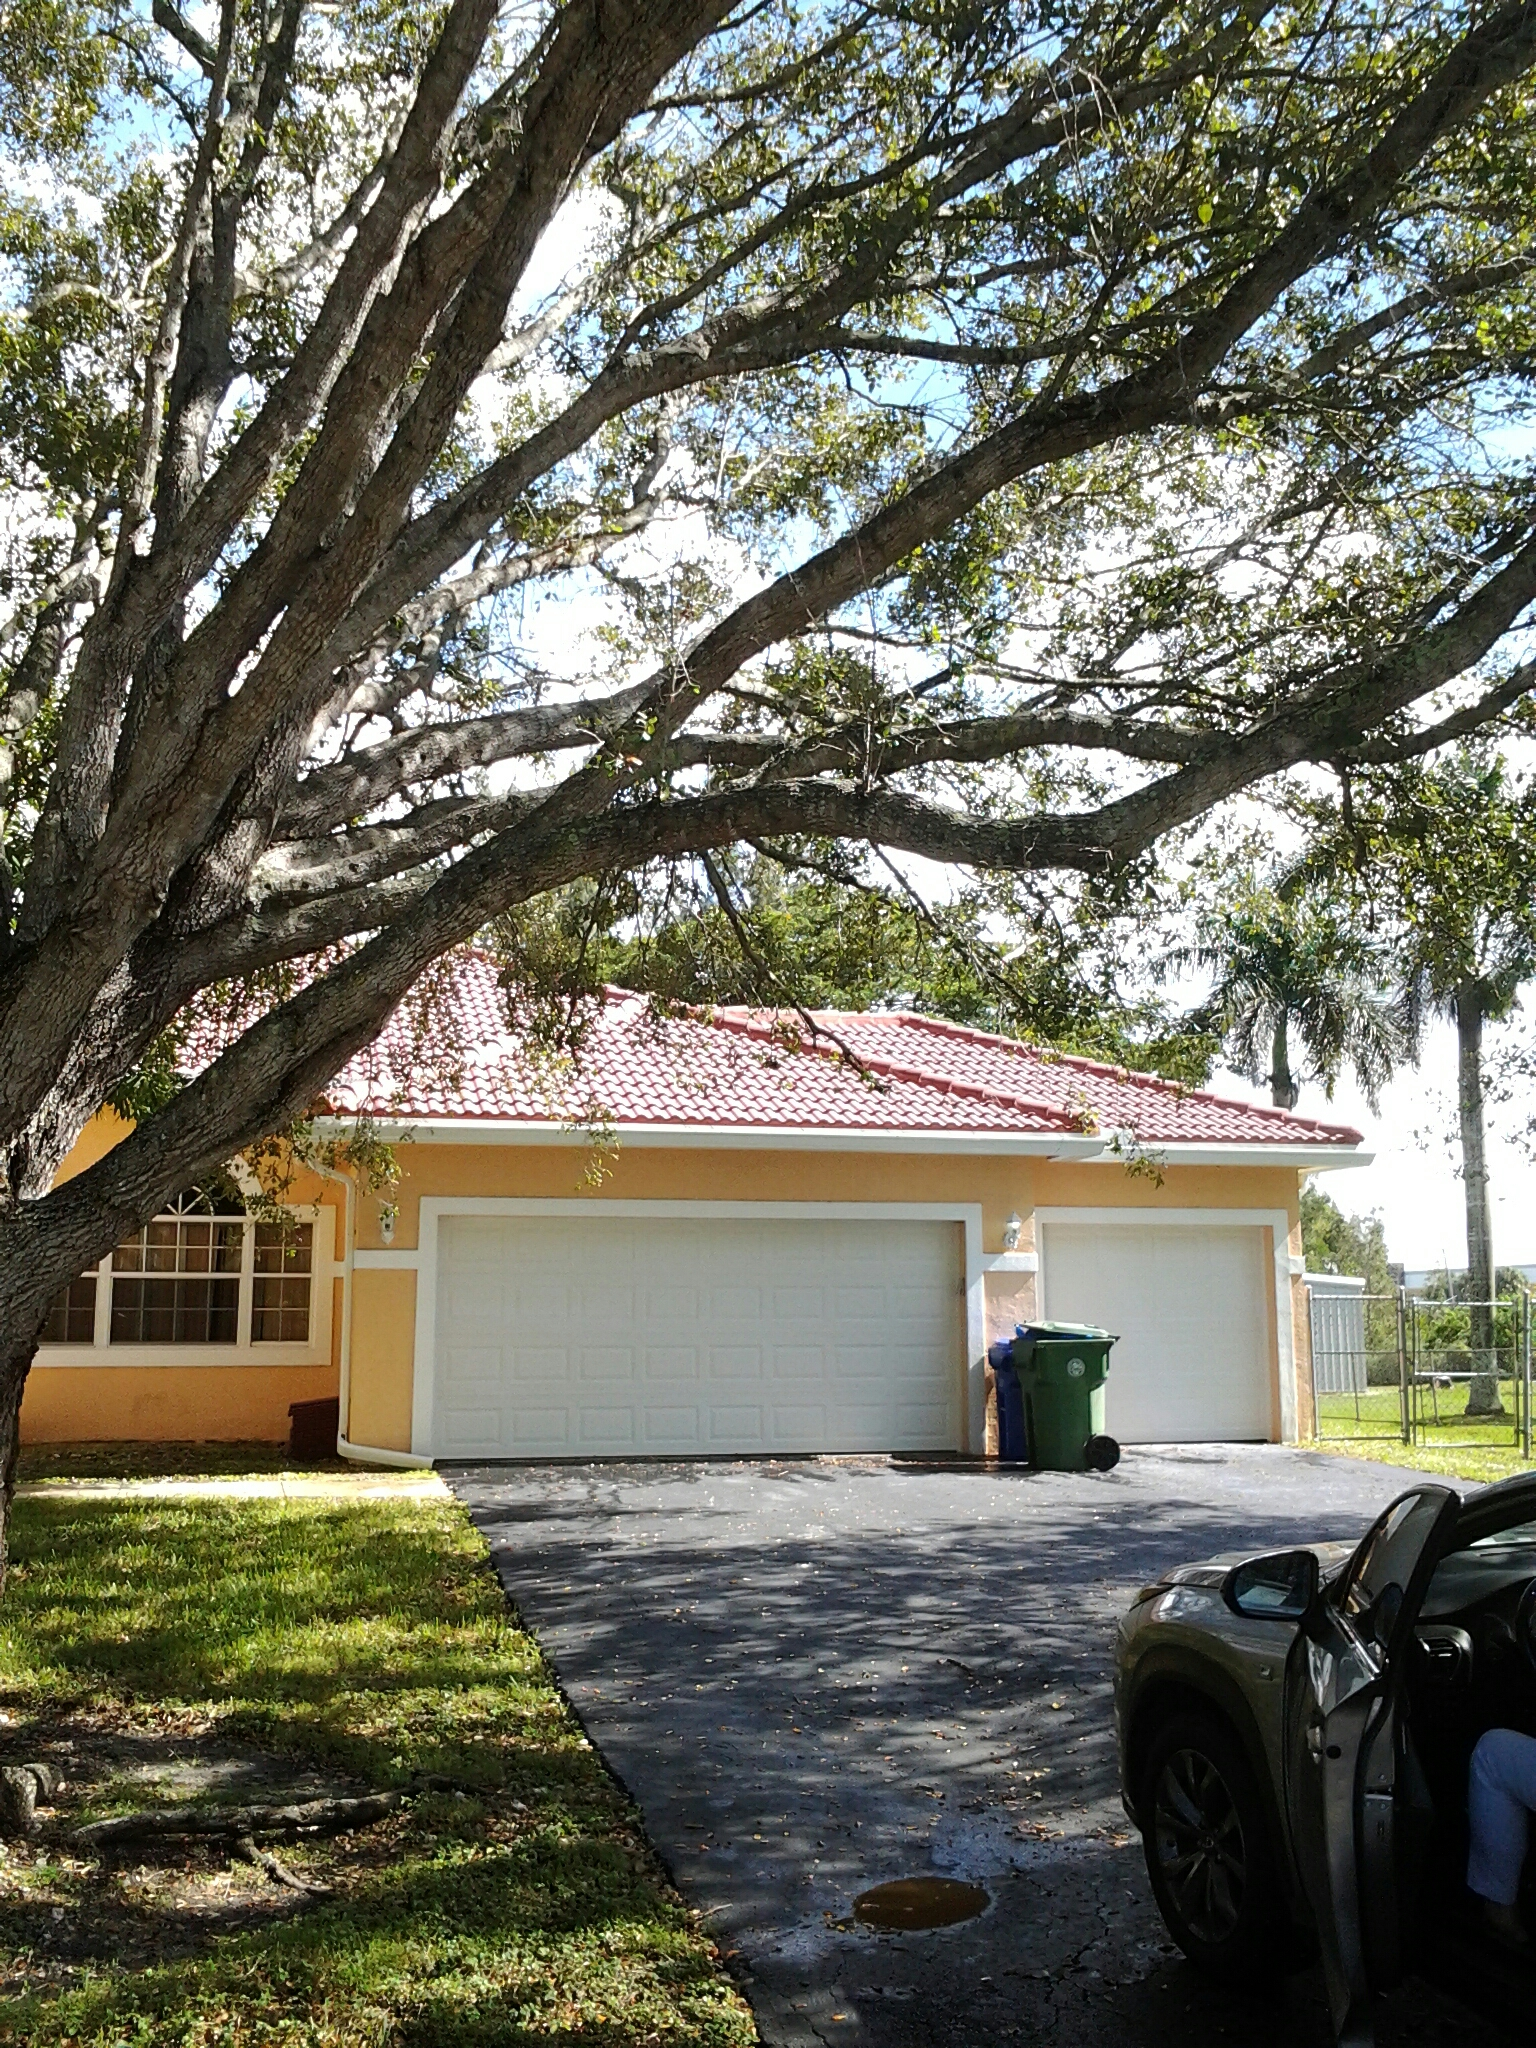 Southwest Ranches, FL - Roof a cide